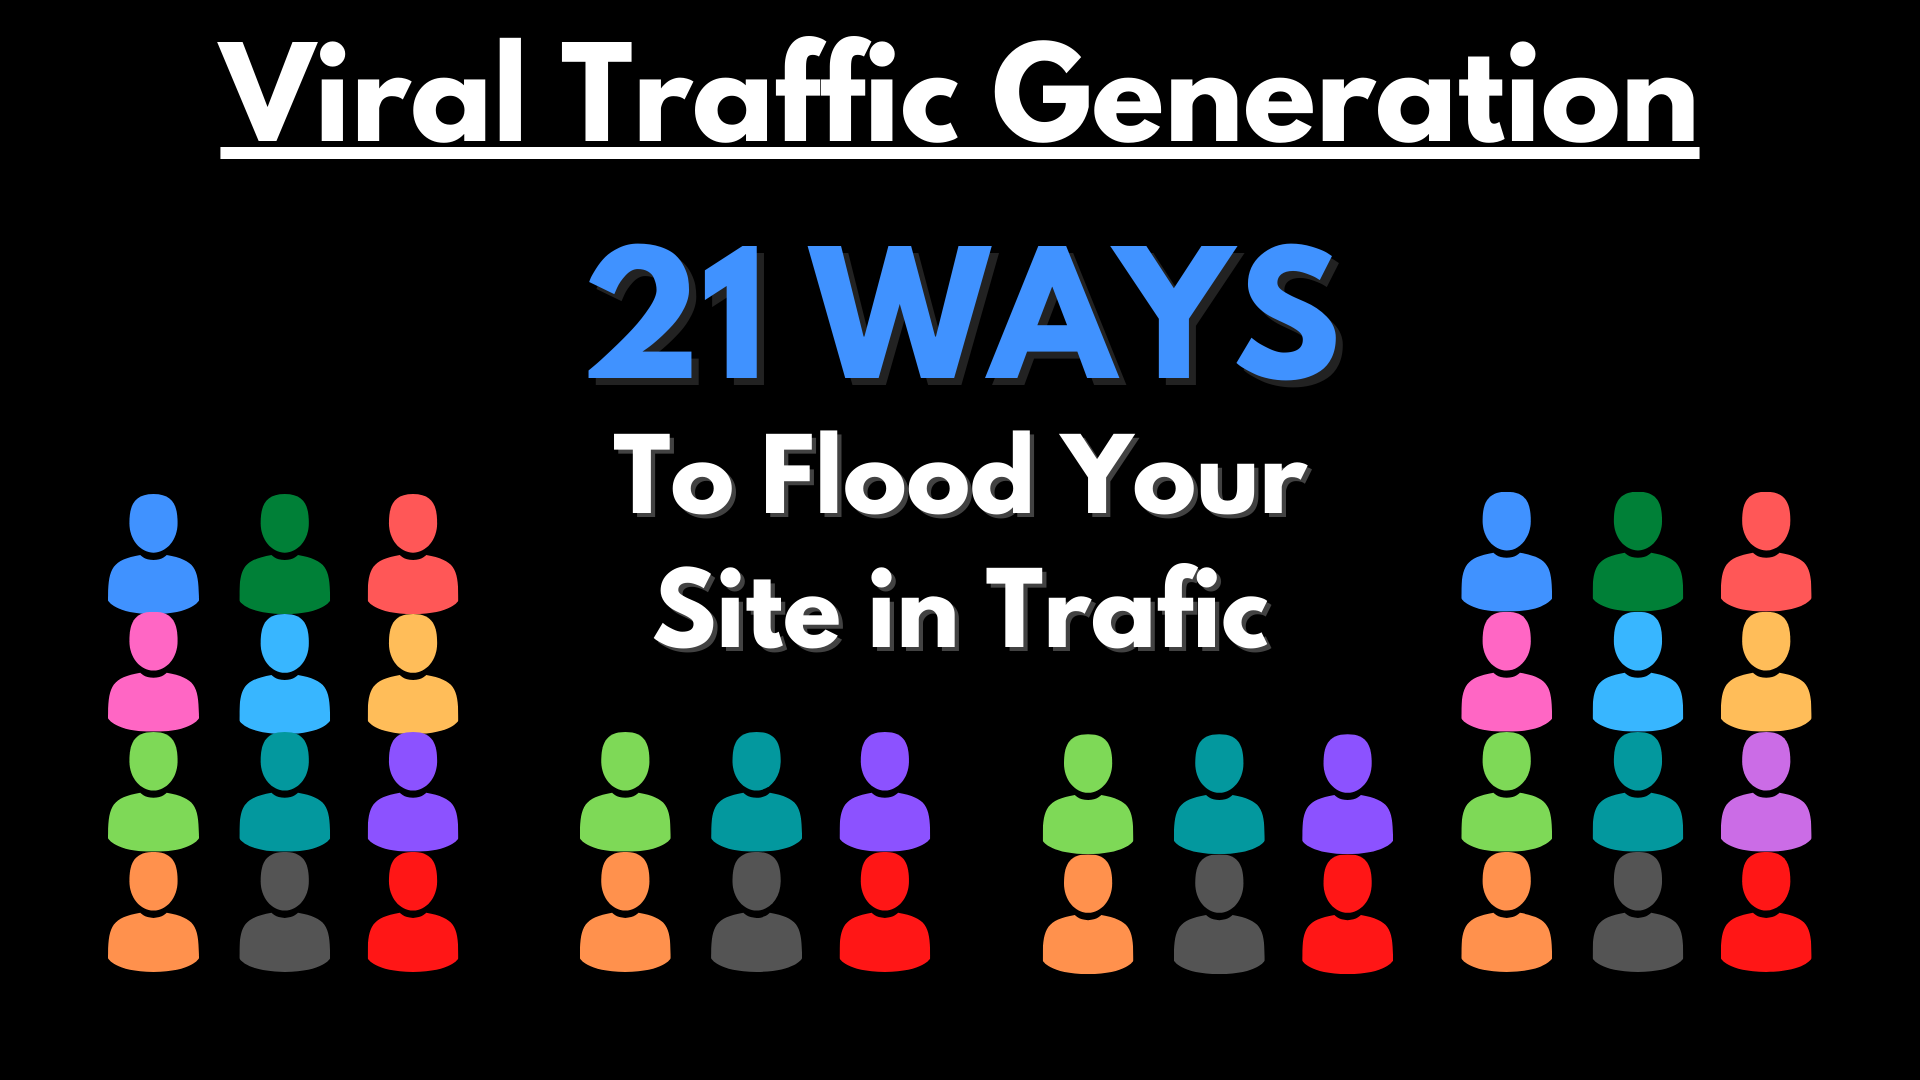 Viral Traffic Generation - 21 Ways To Flood Your Site With Traffic